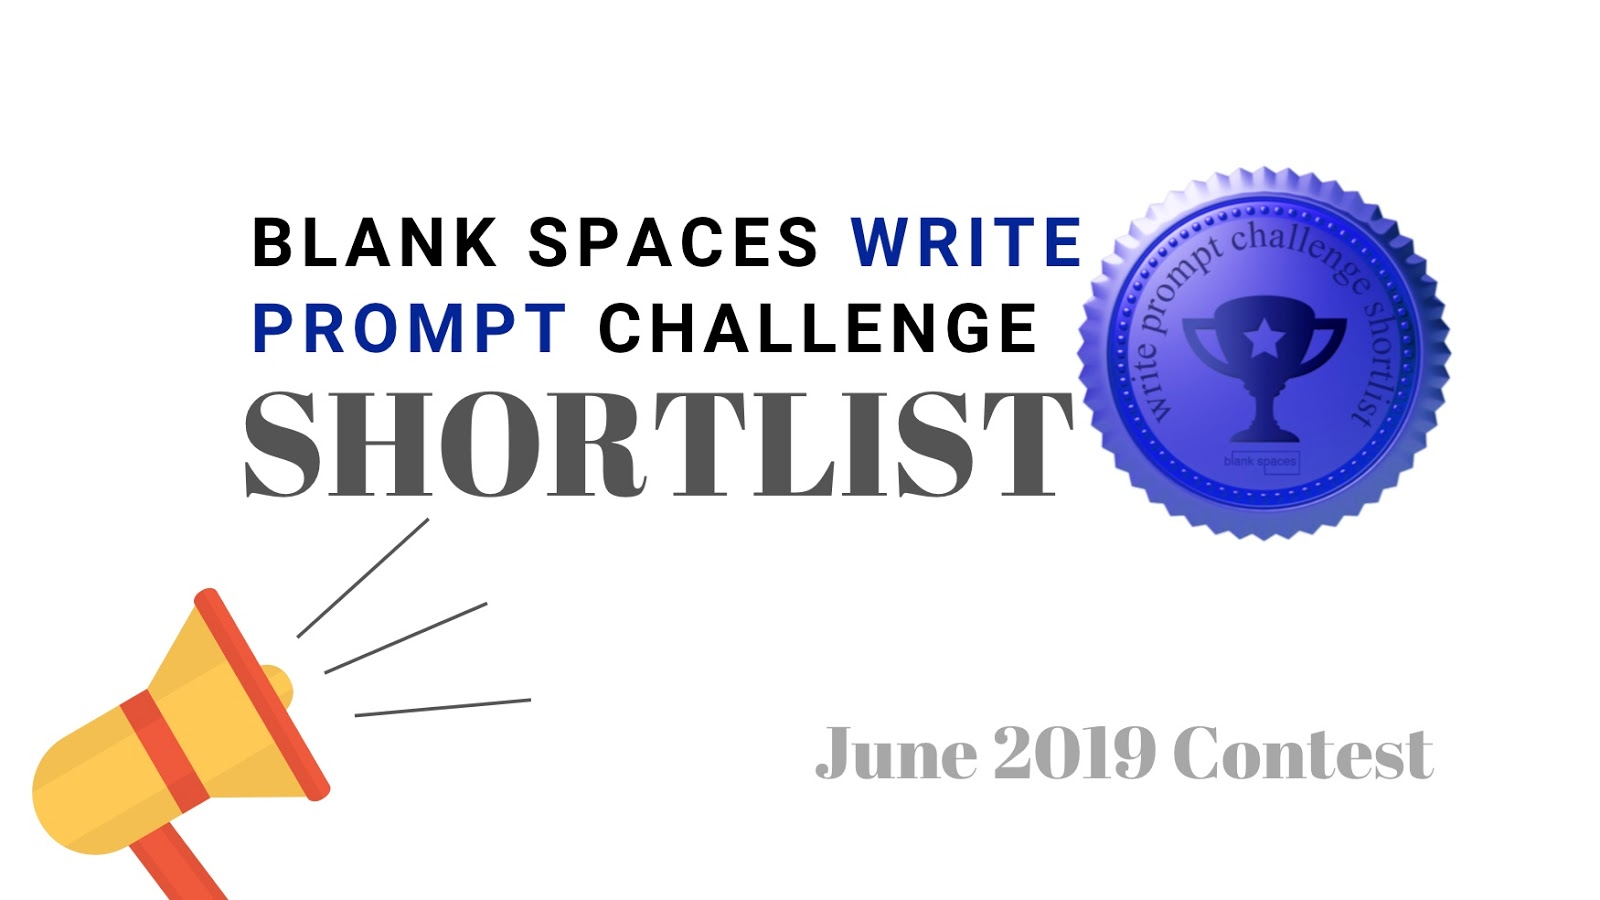 Blank Spaces Write Prompt Challenge Shortlist